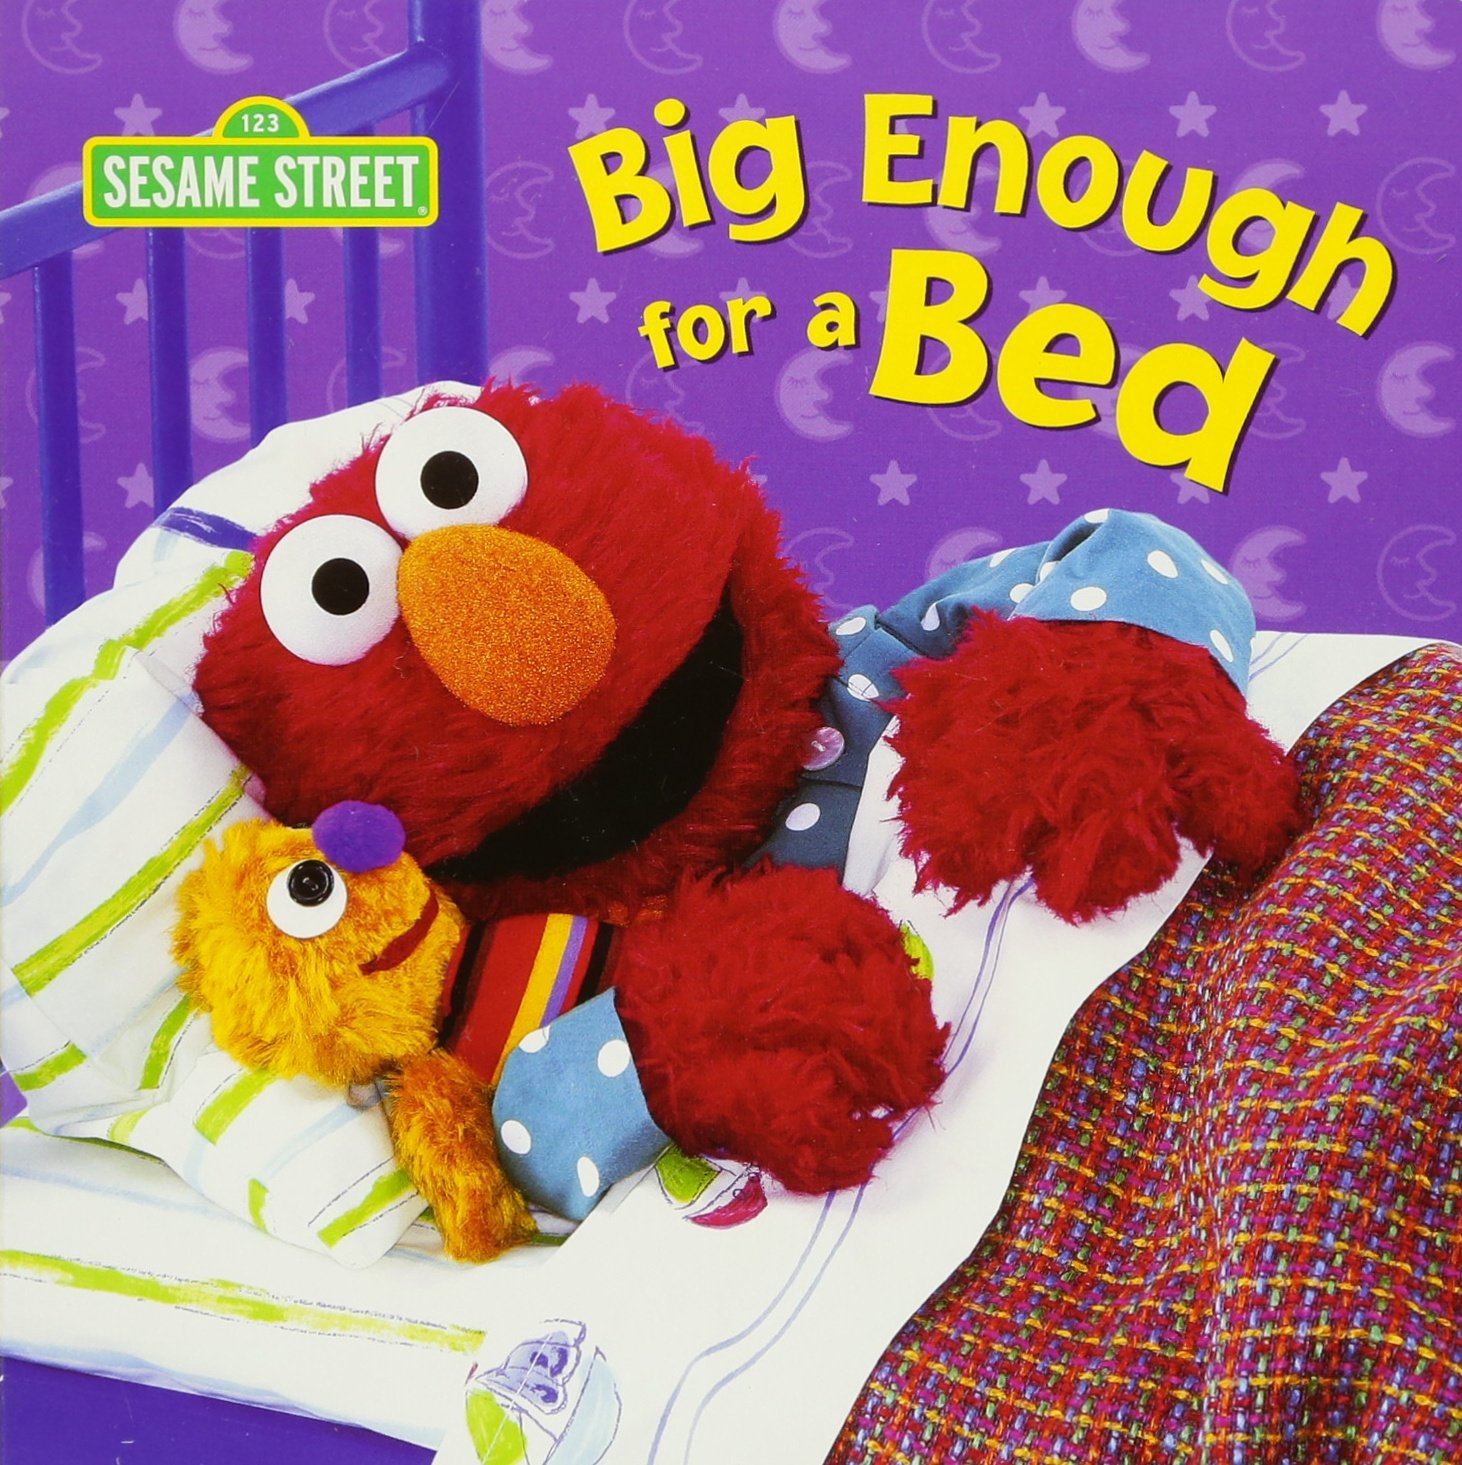 Big Enough Bed Sesame Street